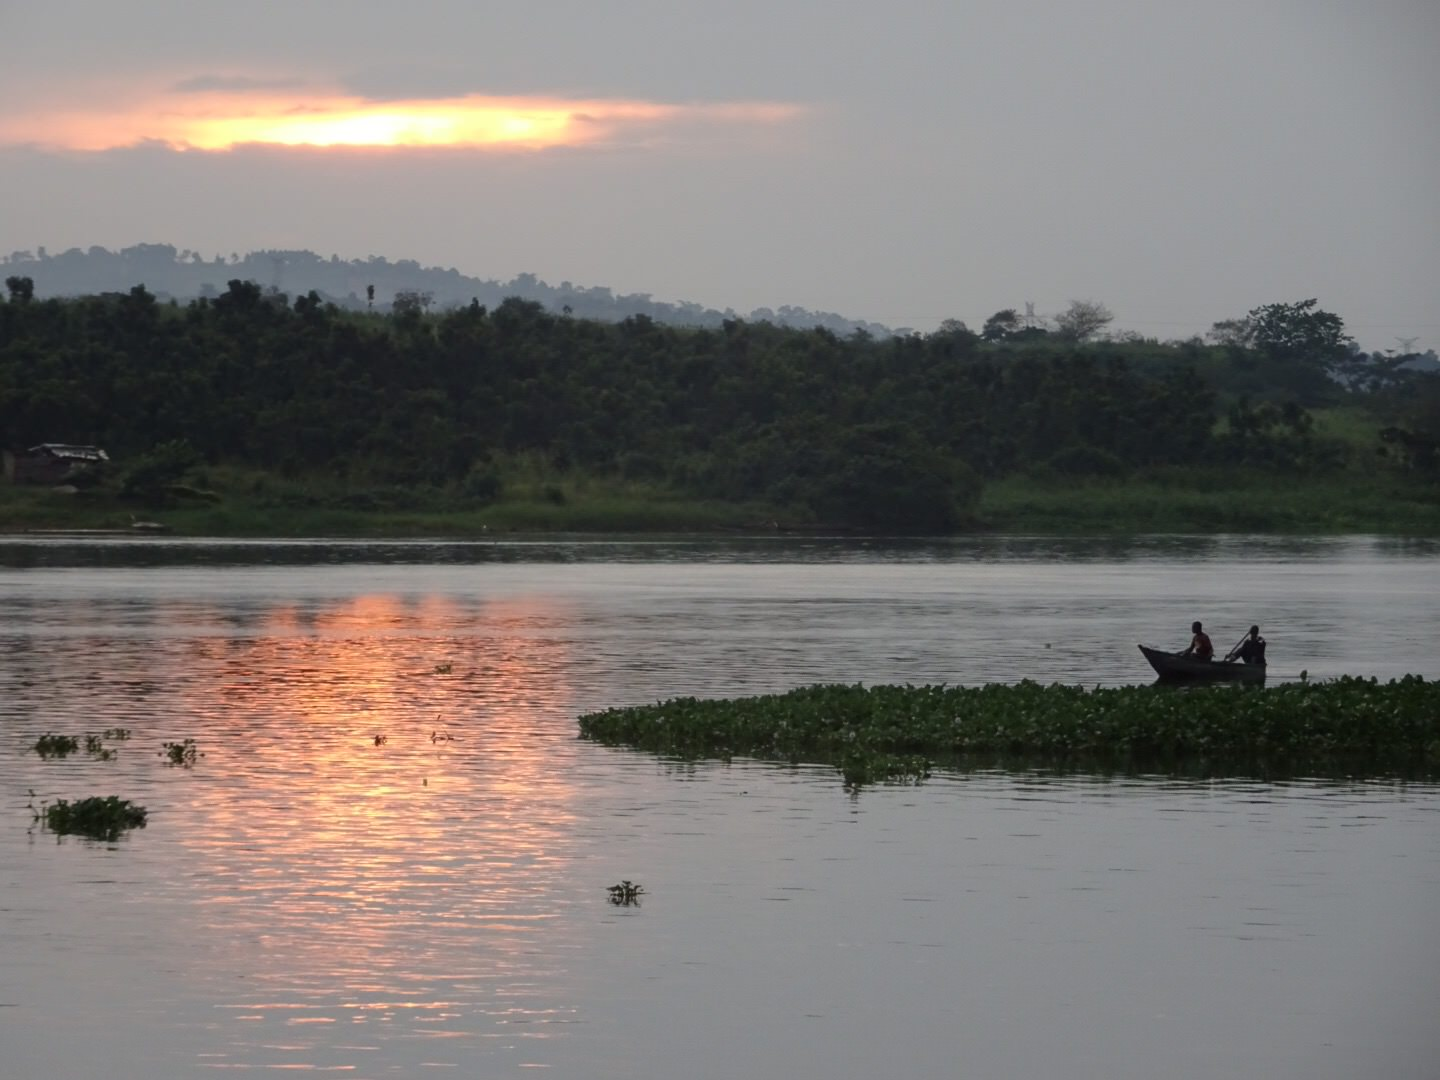 lake victoria, Uganda – Riding by the Nile and Lake Victoria, In The Saddle, In The Saddle